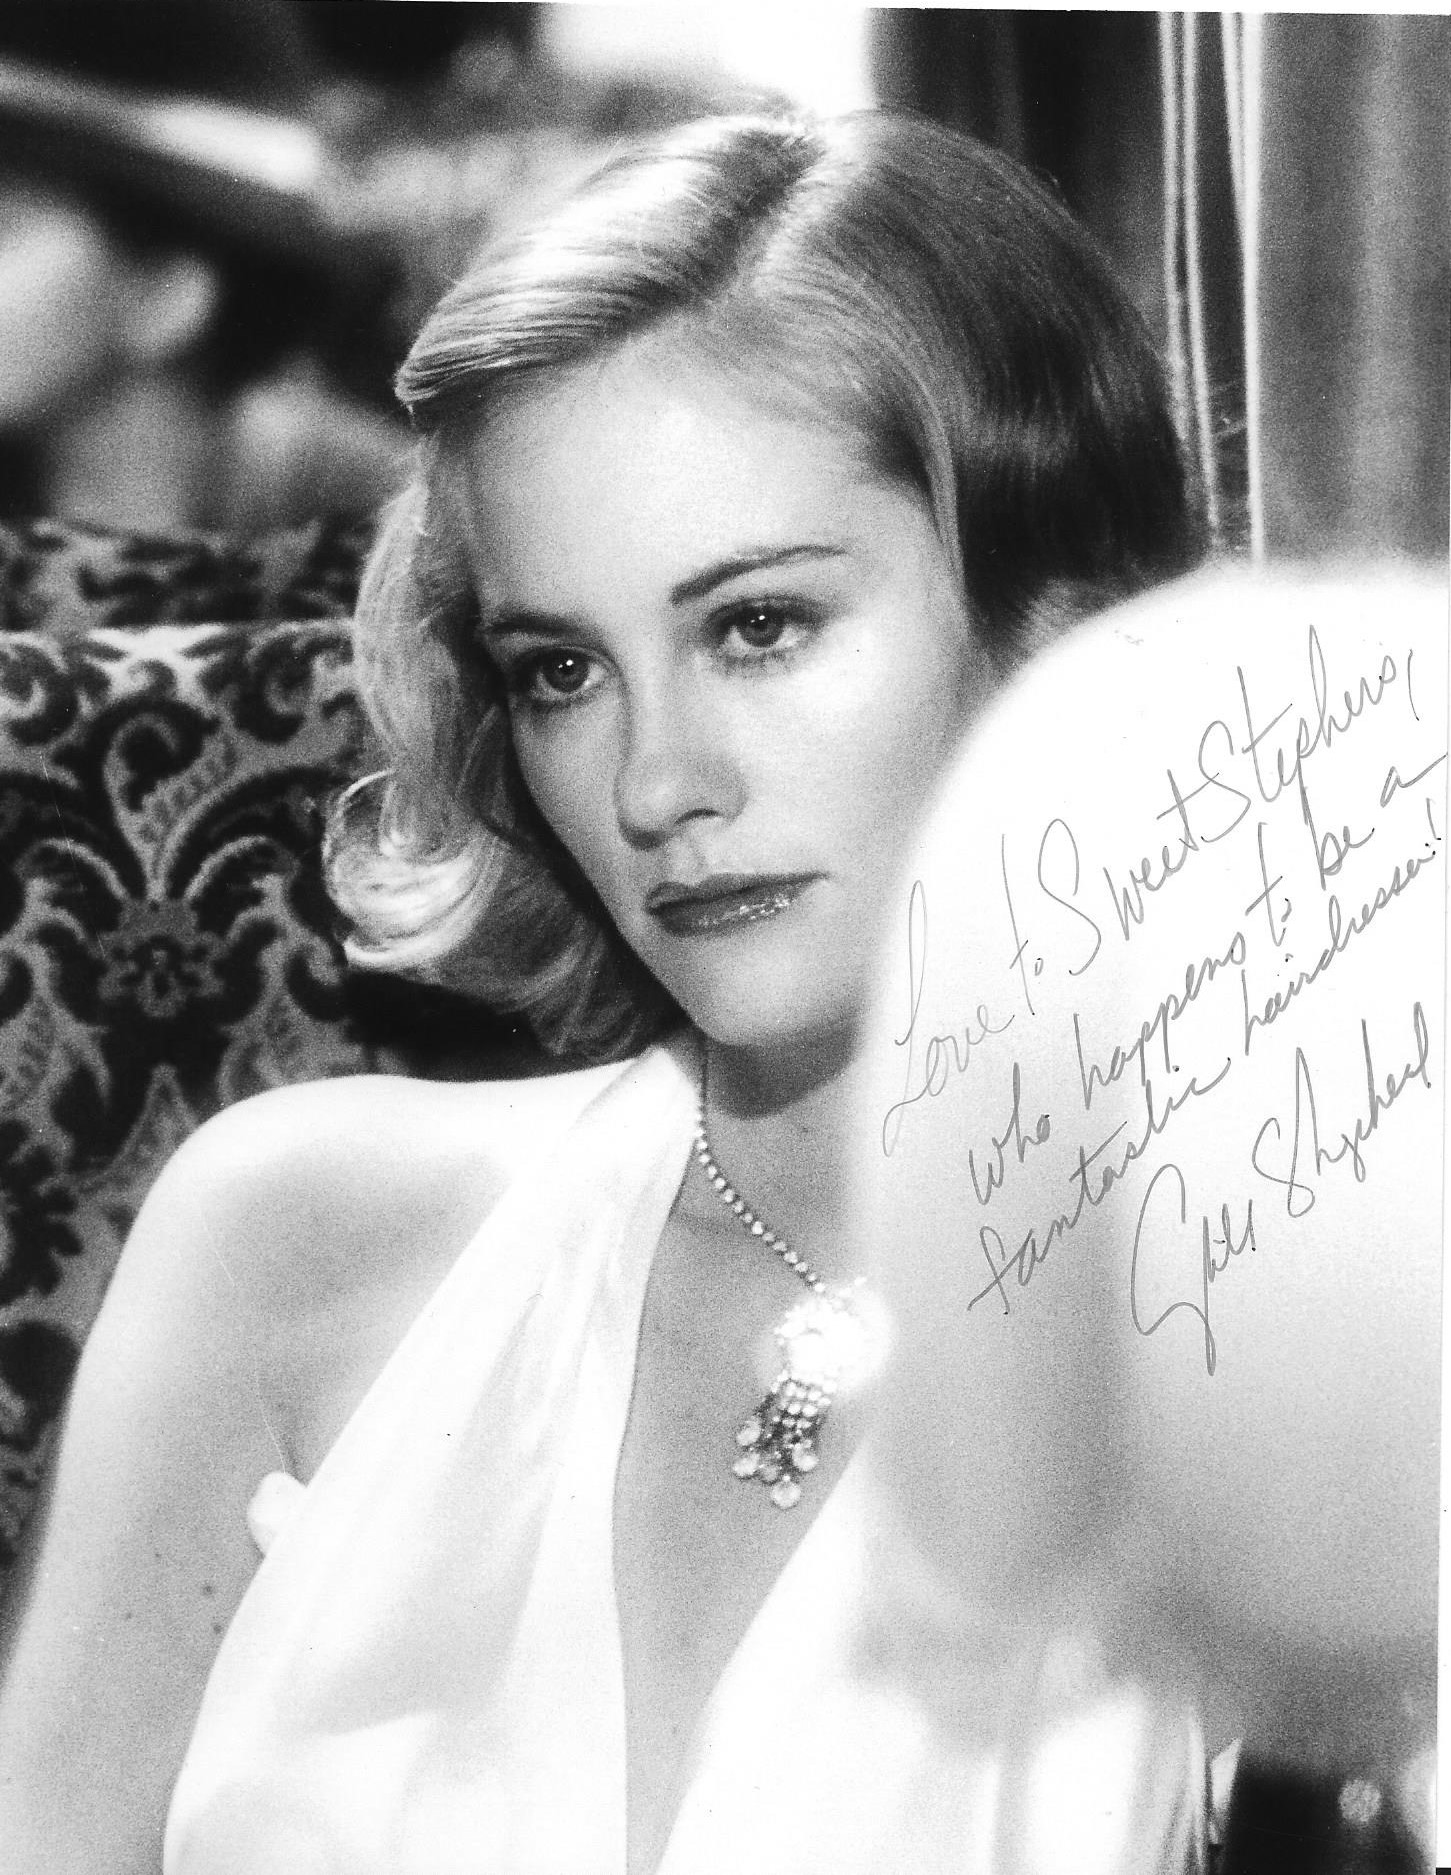 CYBIL SHEPHERD THE LADY VANISHES